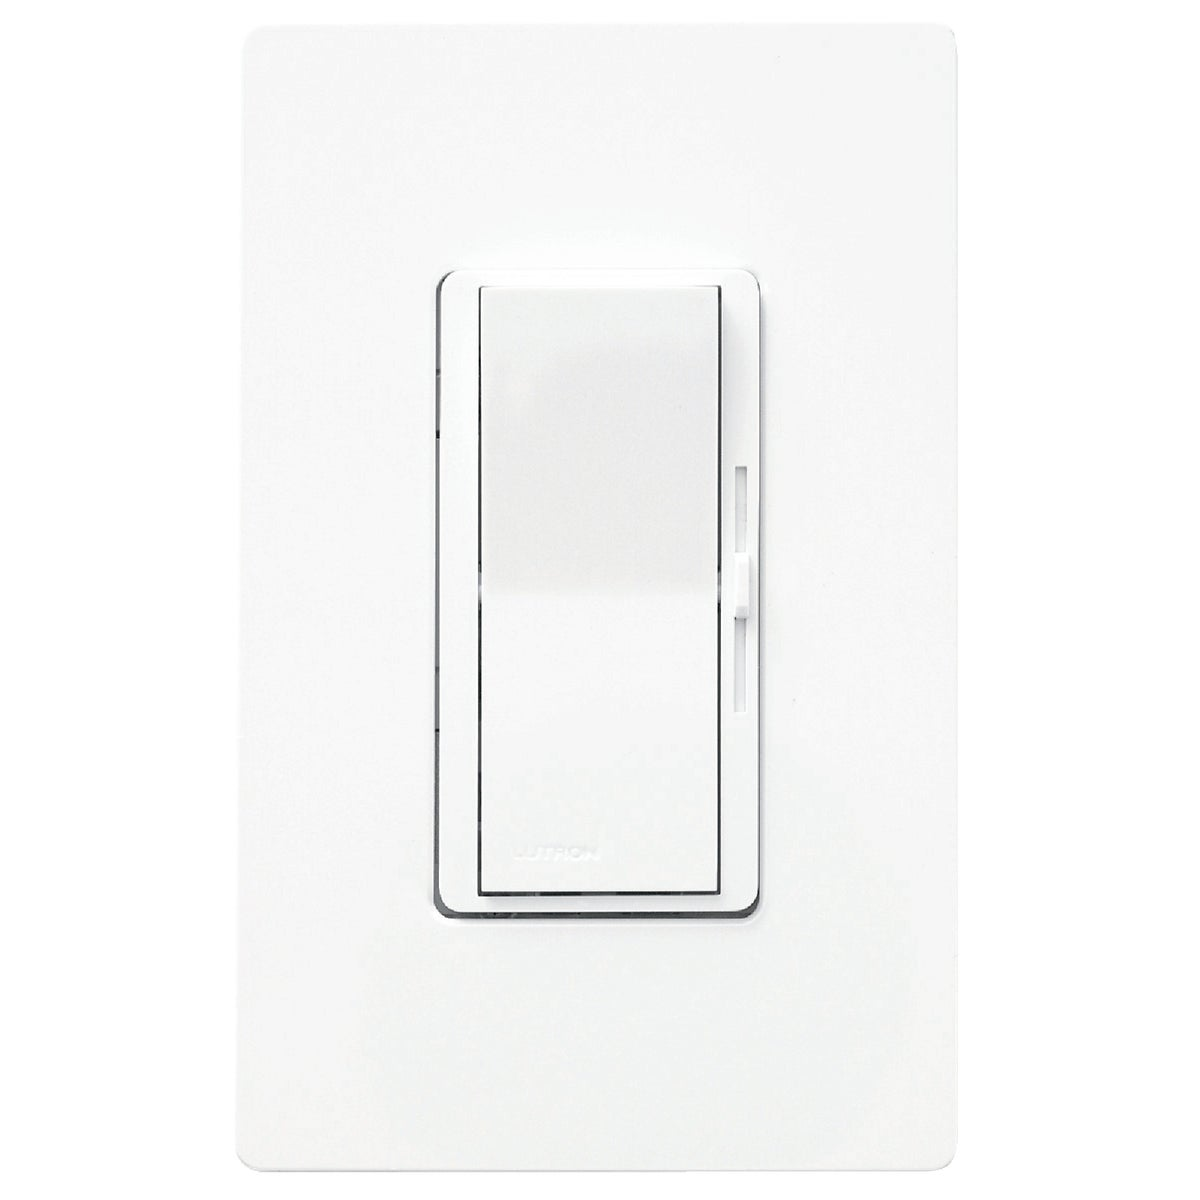 WH 3WAY SLIDE DIMMER